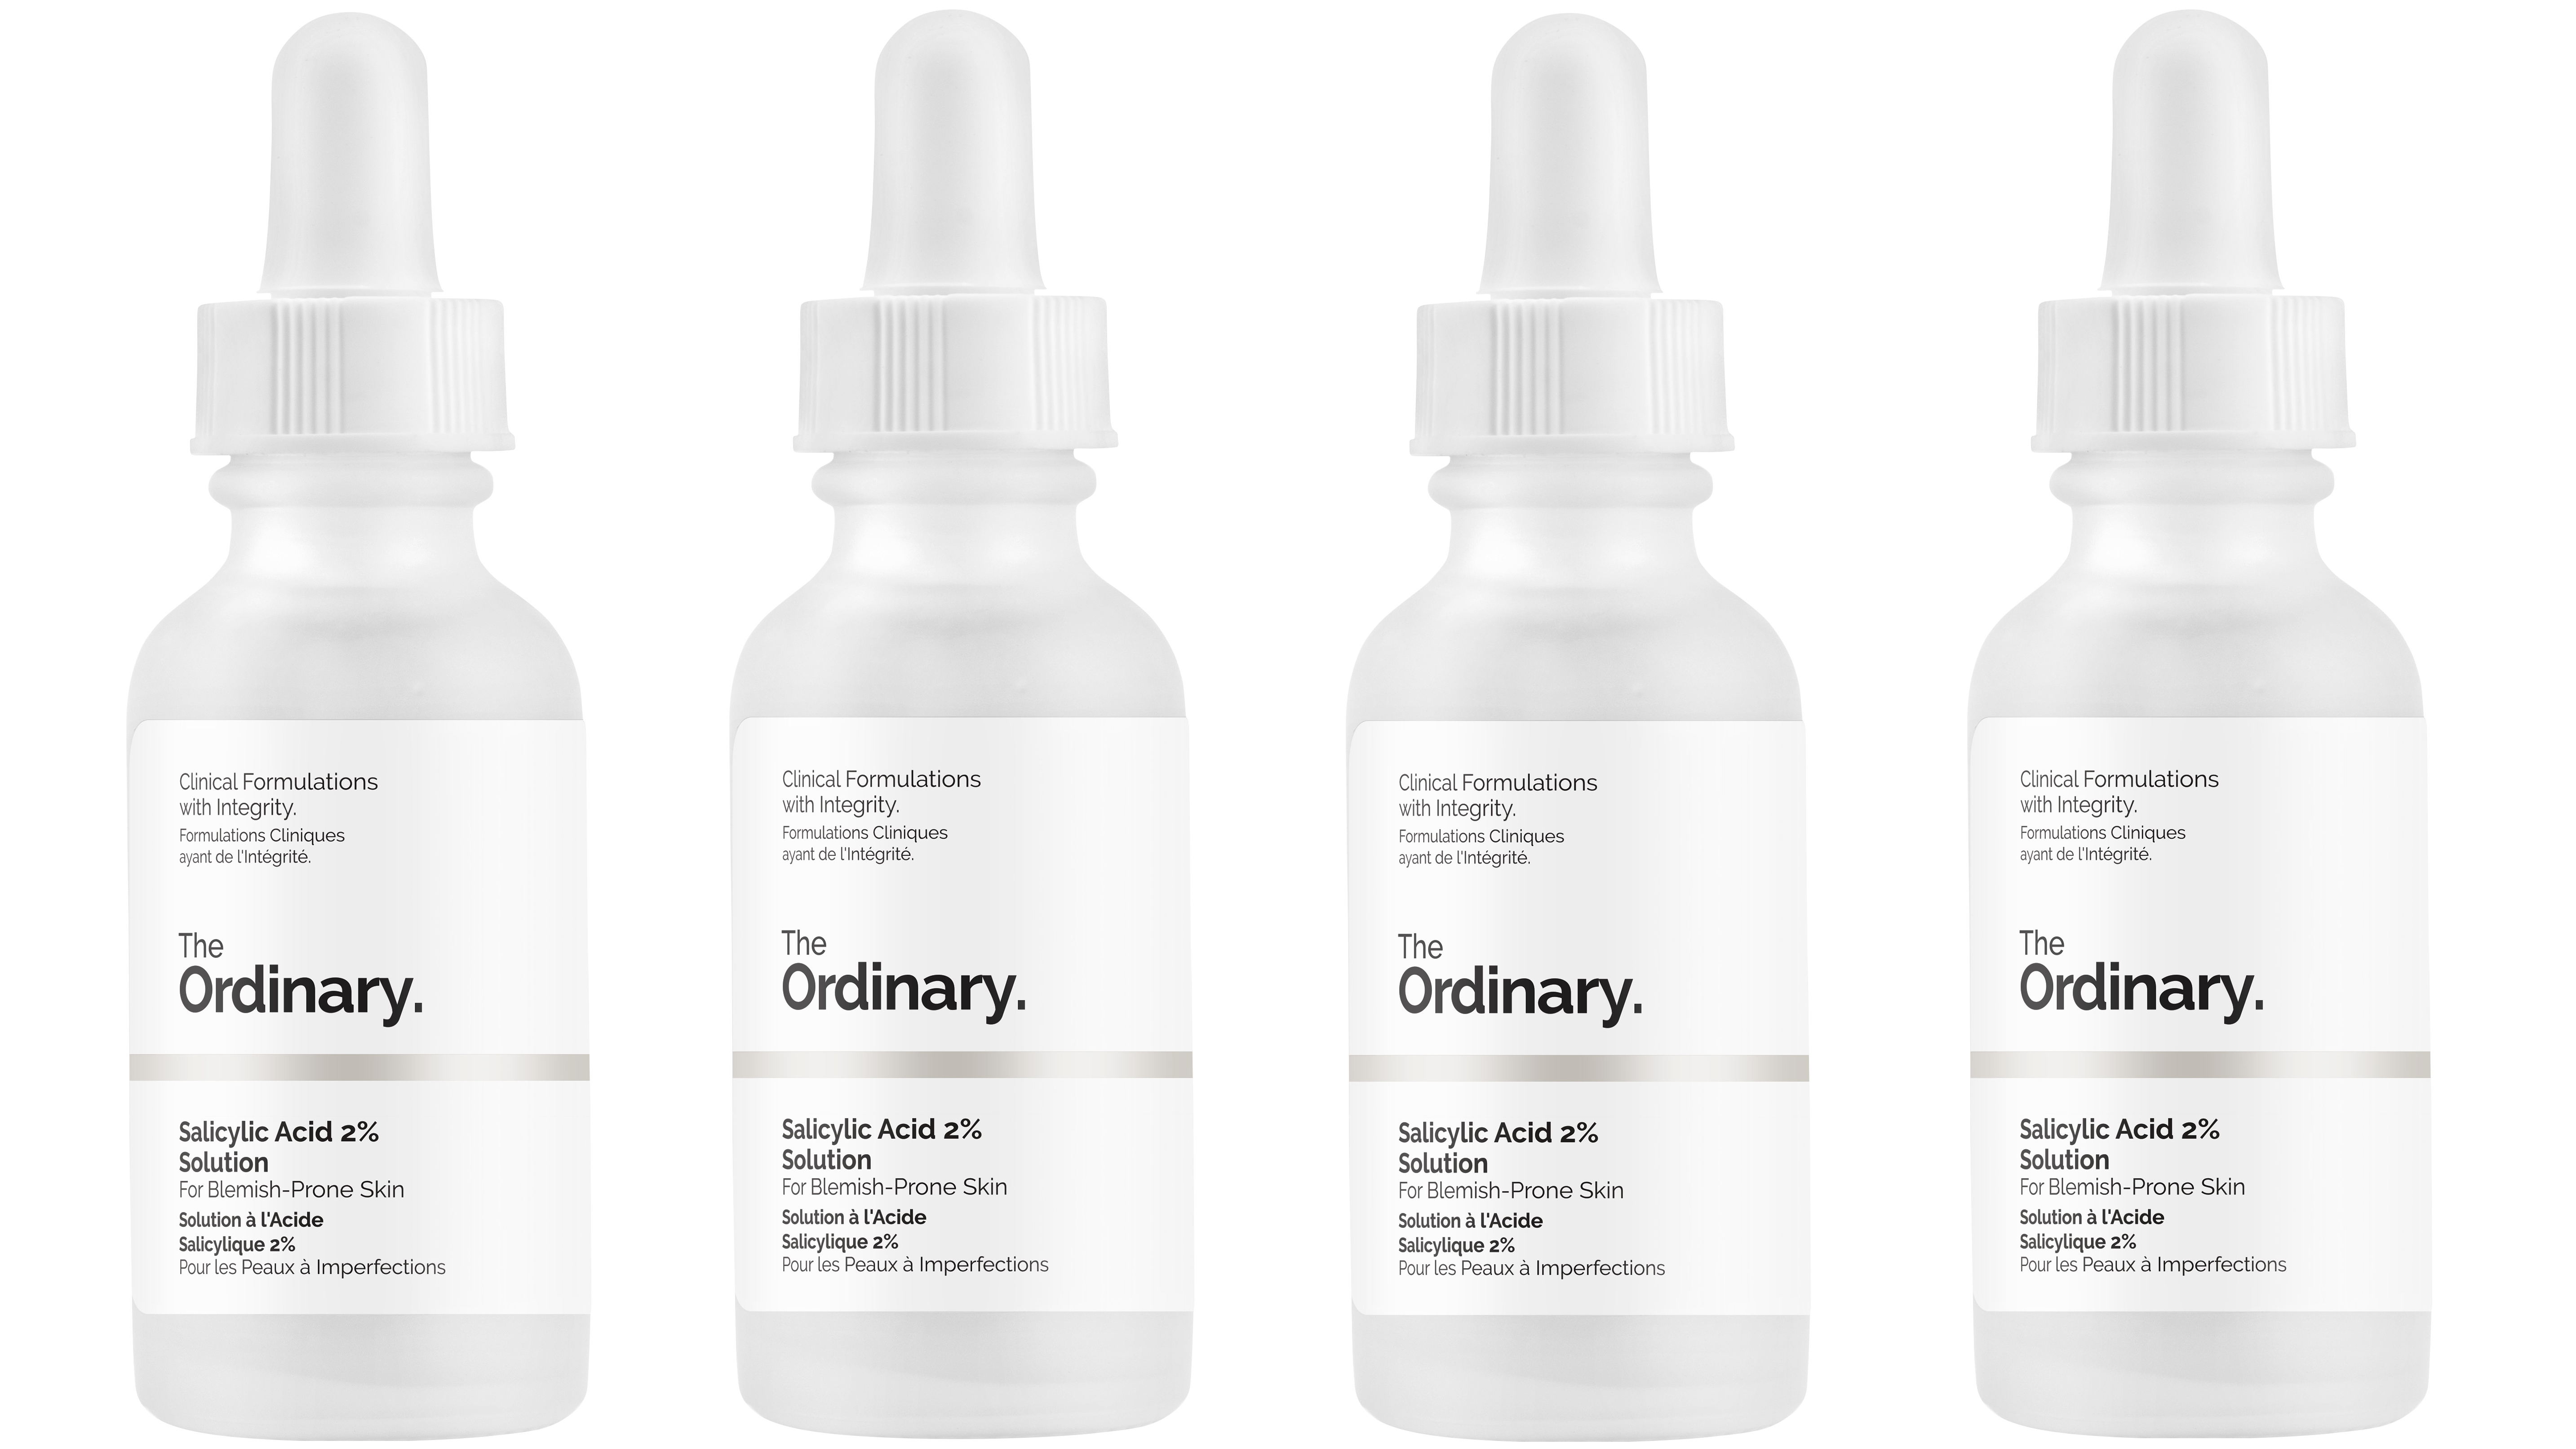 Beauty Buffs Are Raving Over This £4.25 'Blackhead Banishing' Solution From The Ordinary